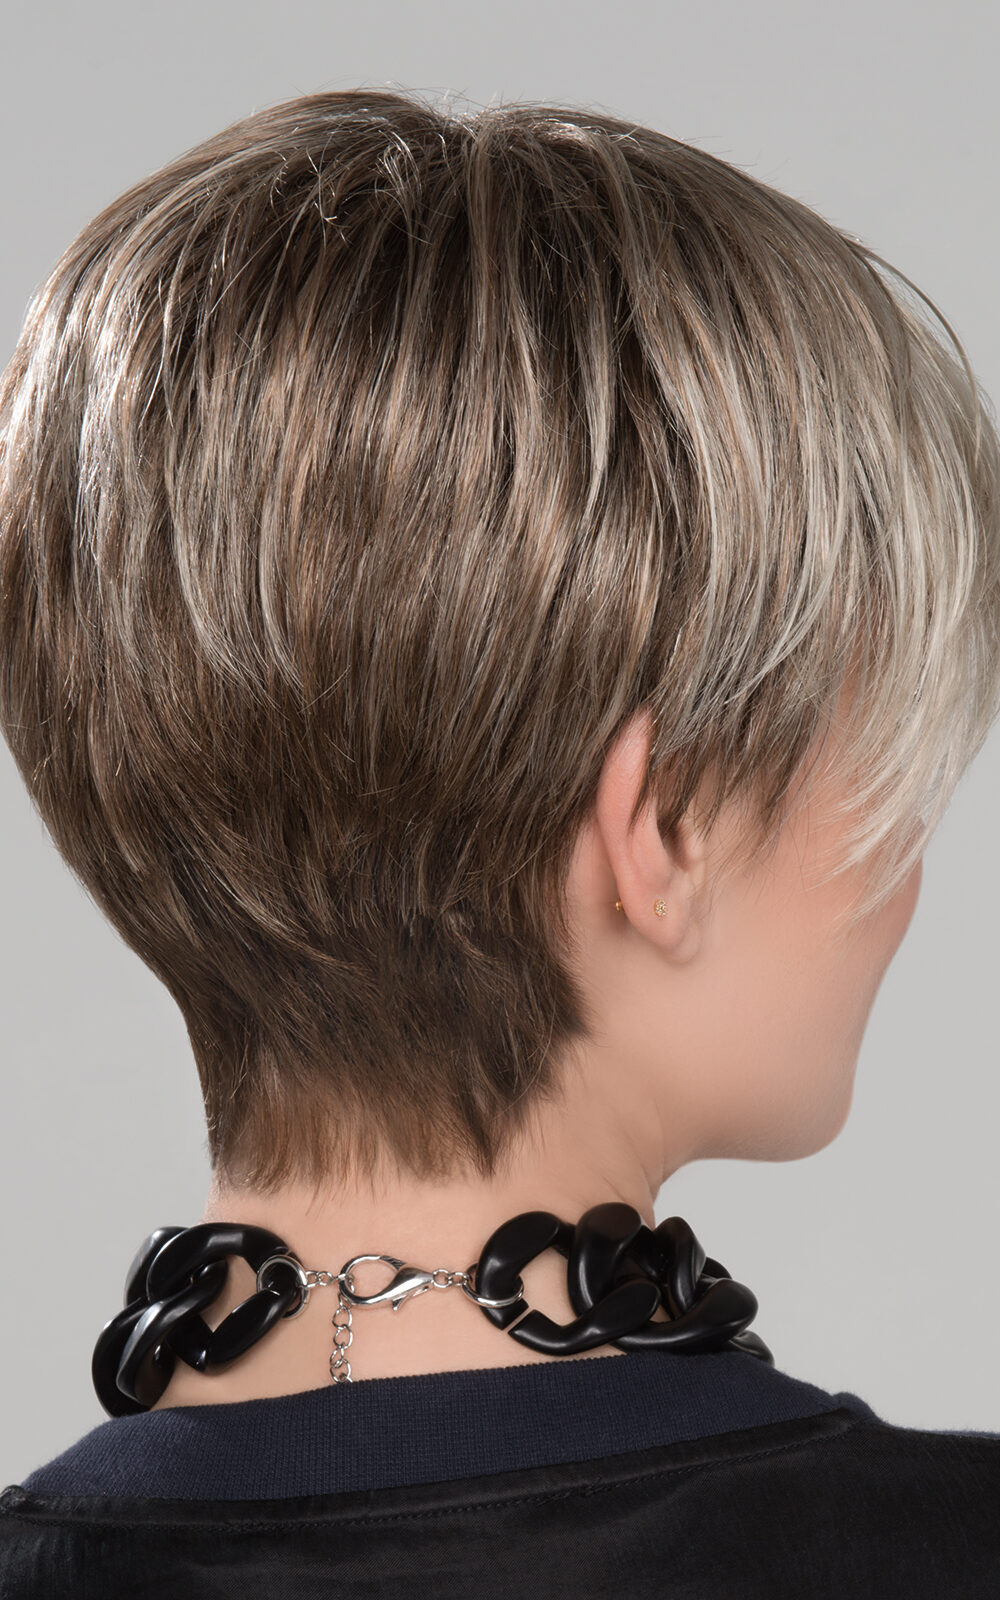 Tapered neckline and extra comfort